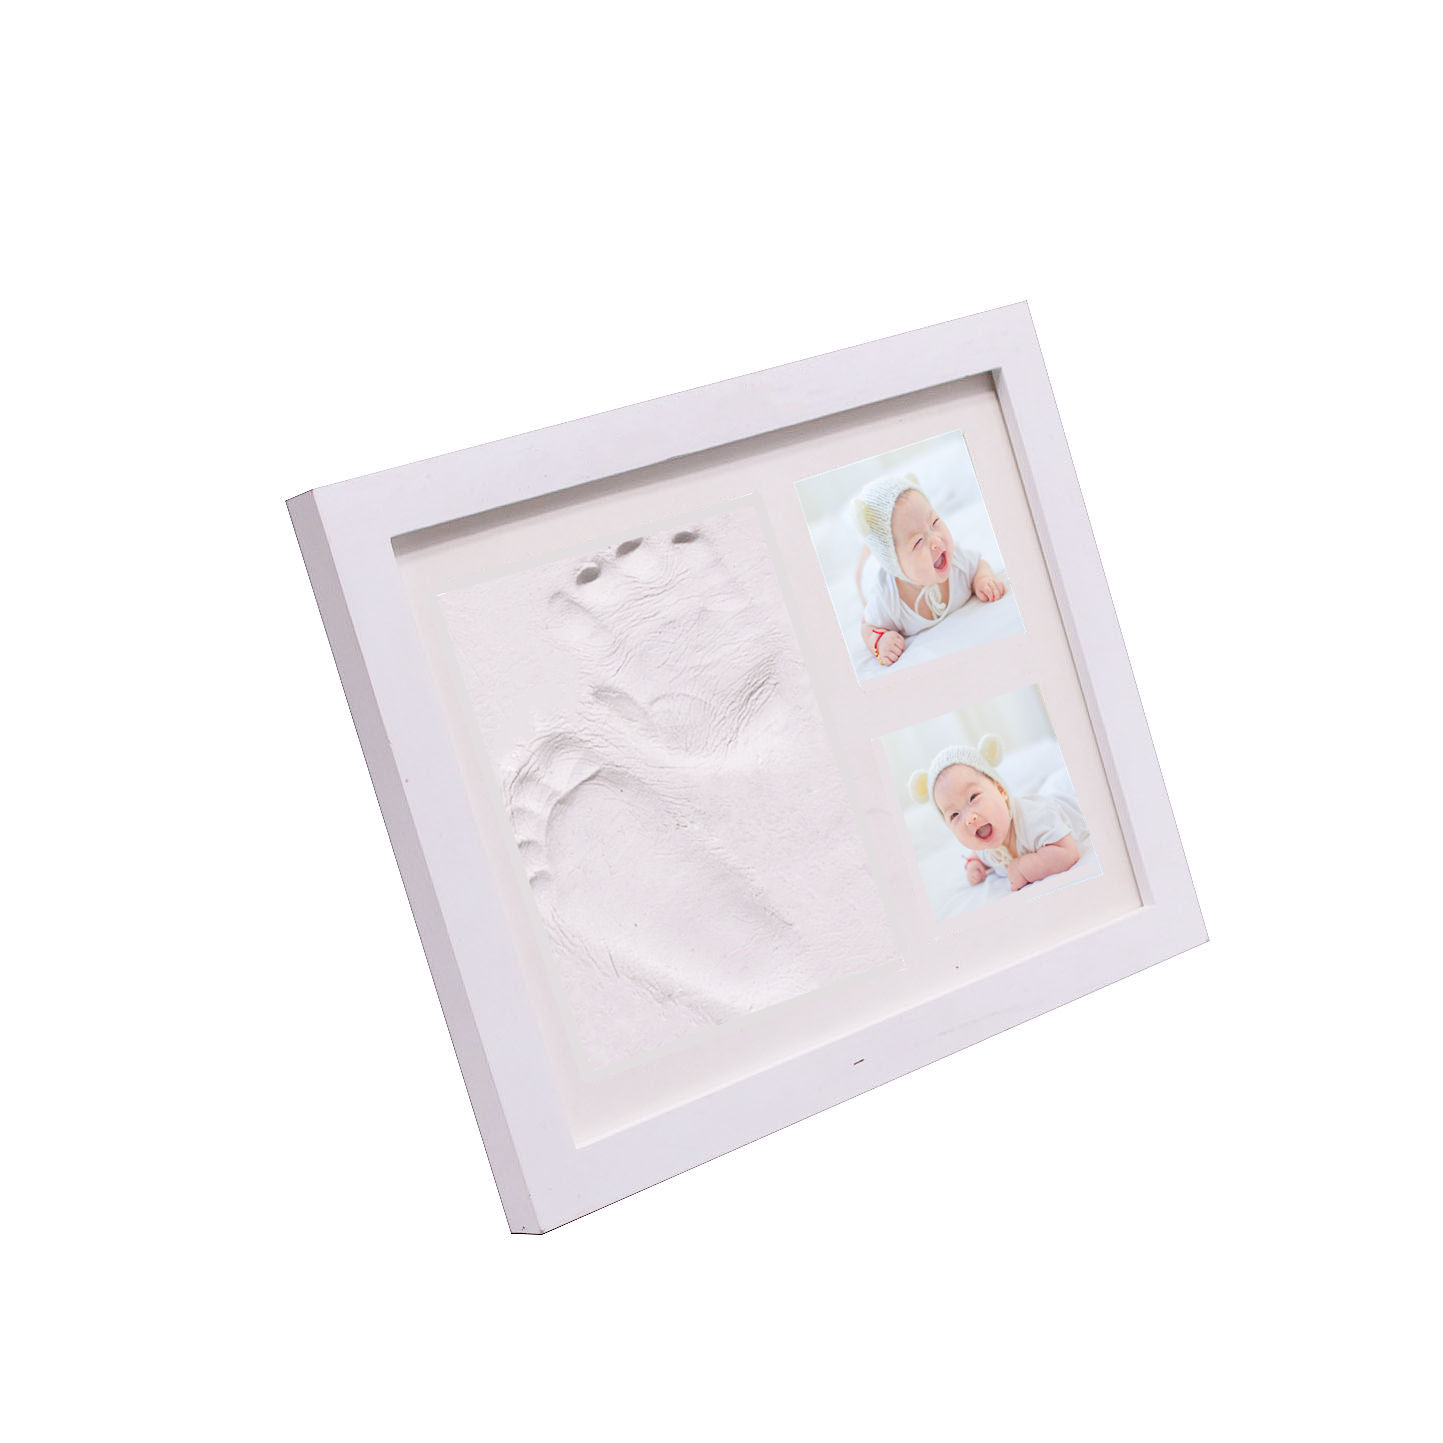 23*28cm baby handprint and footprint clay newborn baby photo frame for kids gift